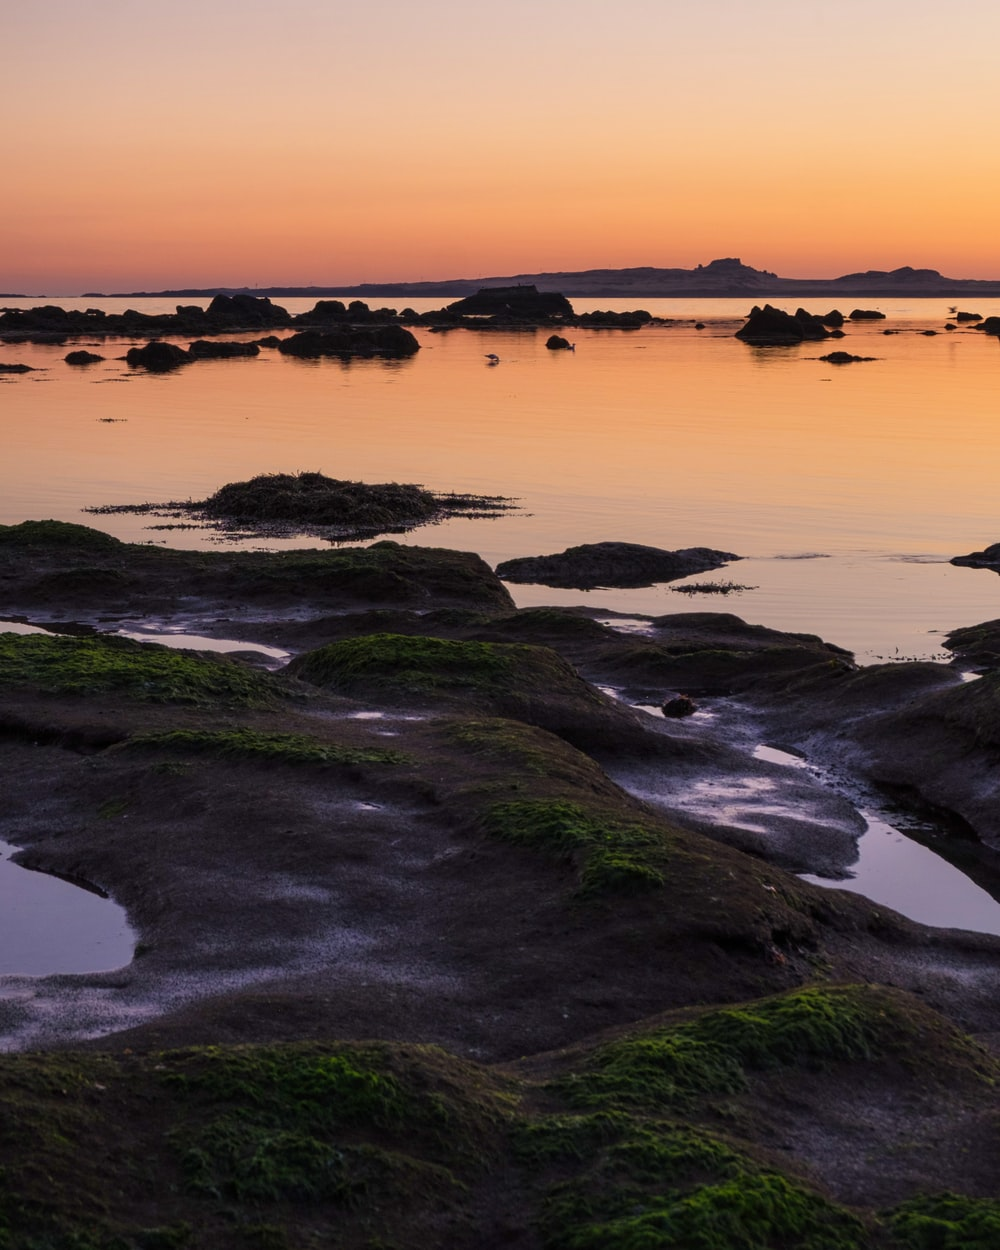 moss covered on rocks at shore during golden hour